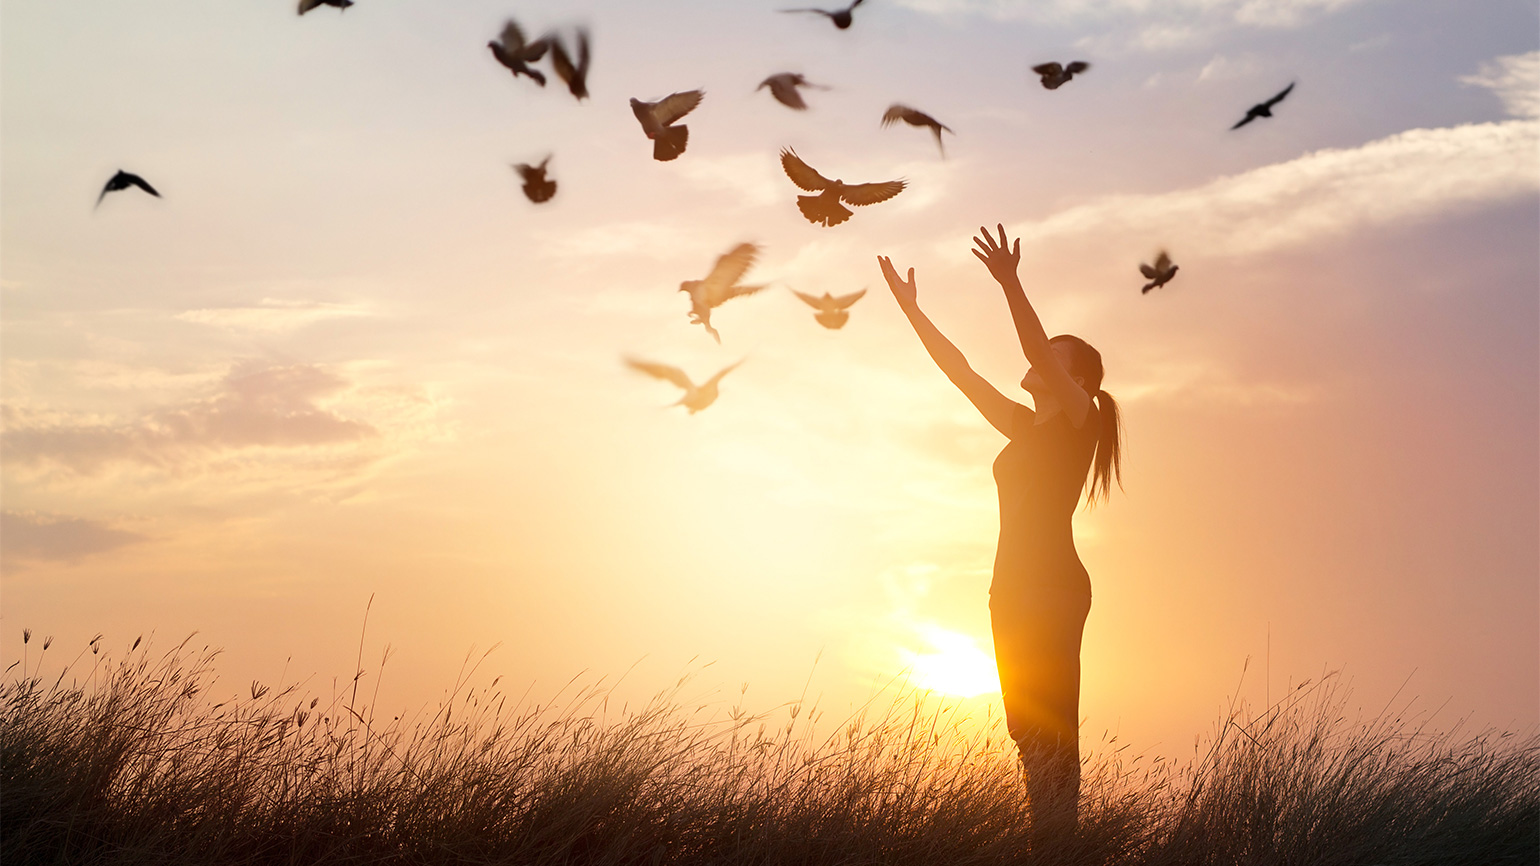 A woman raises her arms to the sun